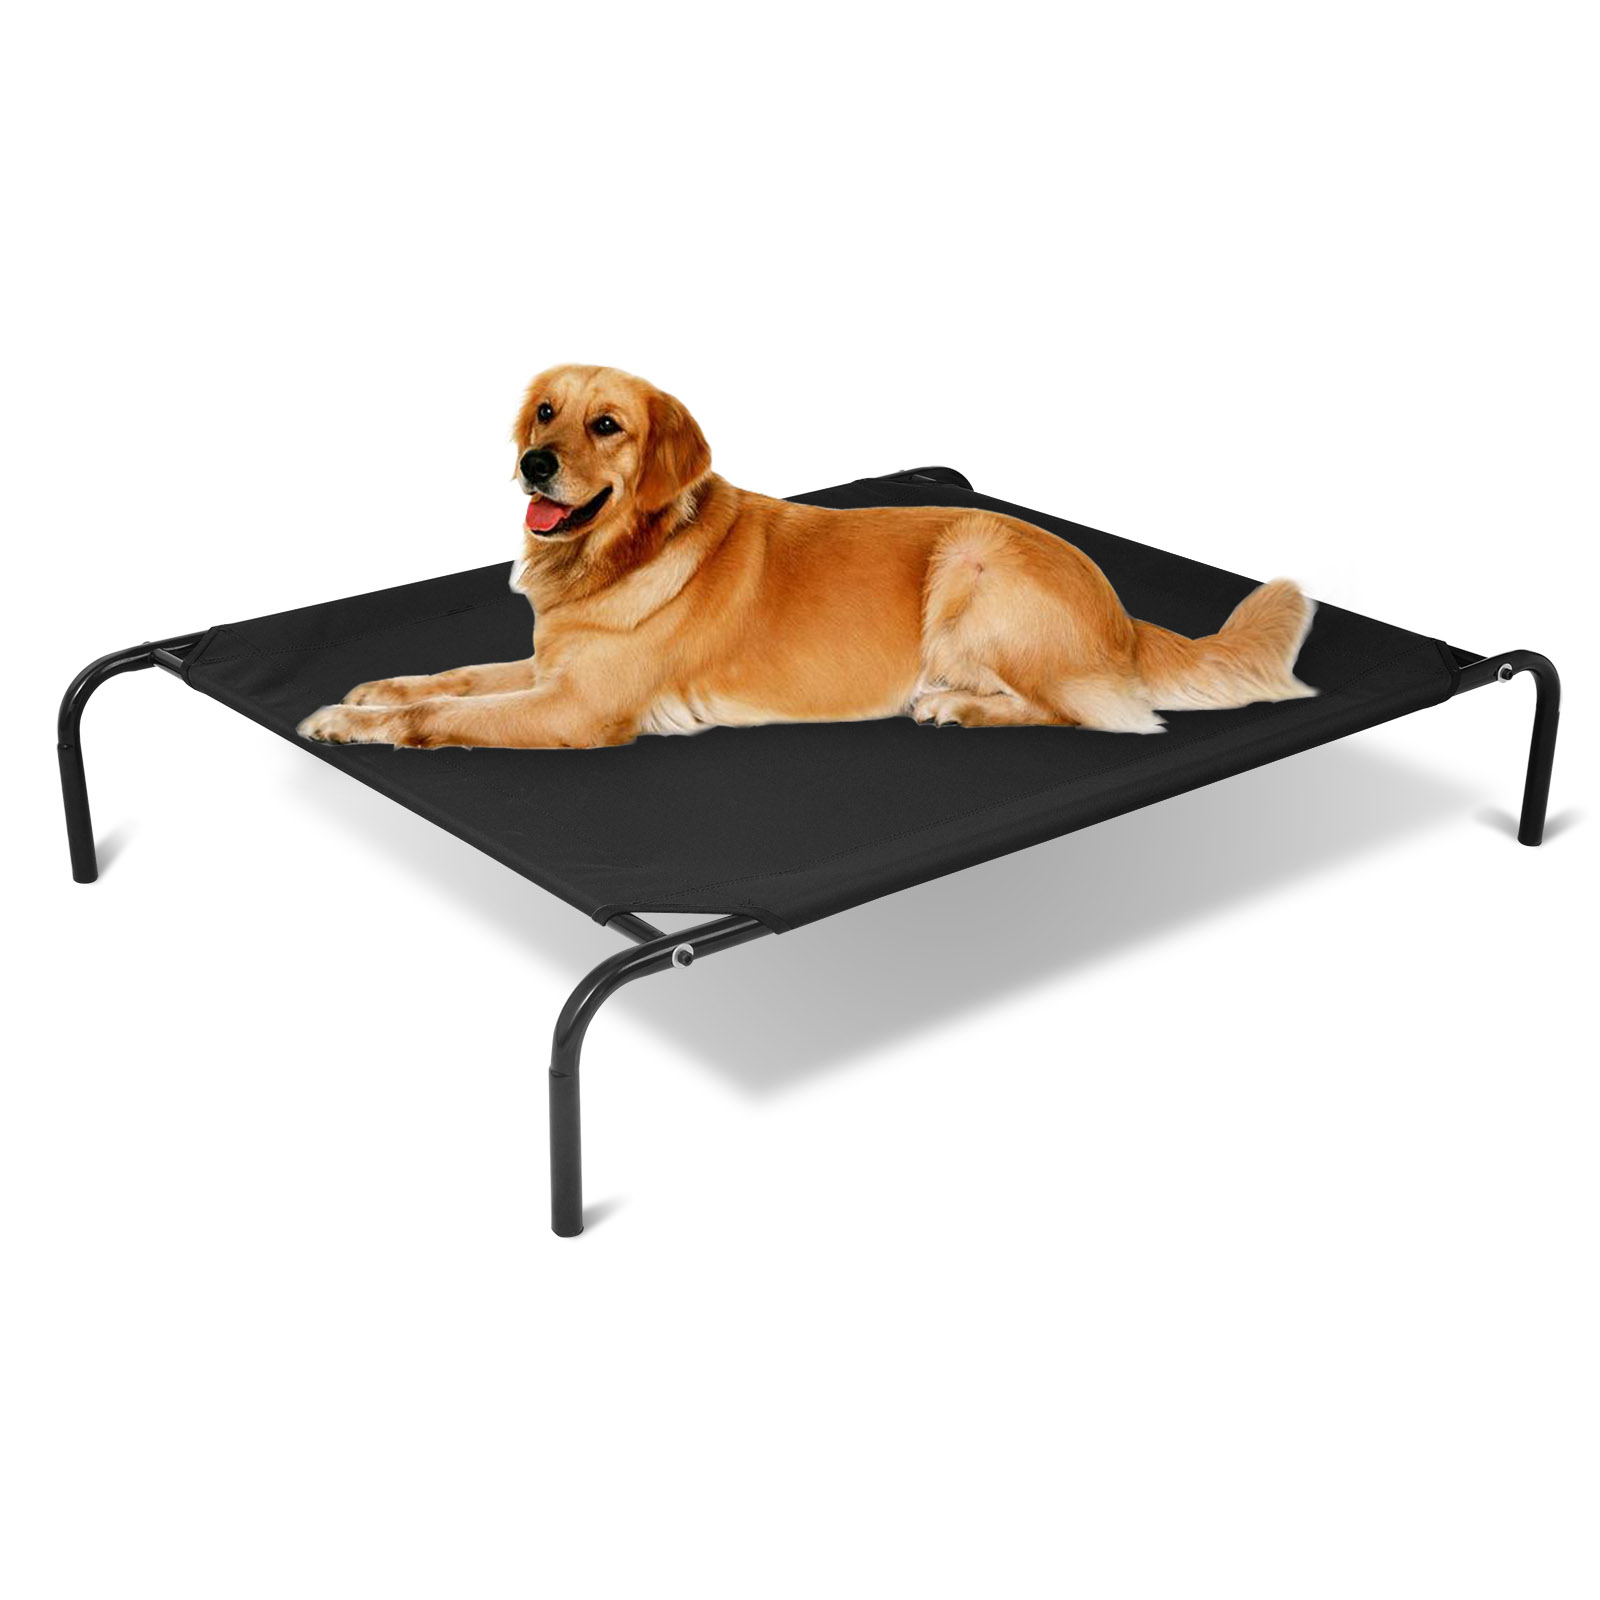 lit sur lev pour chien chat de lit lit d 39 animal domestique chien couchage f222 ebay. Black Bedroom Furniture Sets. Home Design Ideas